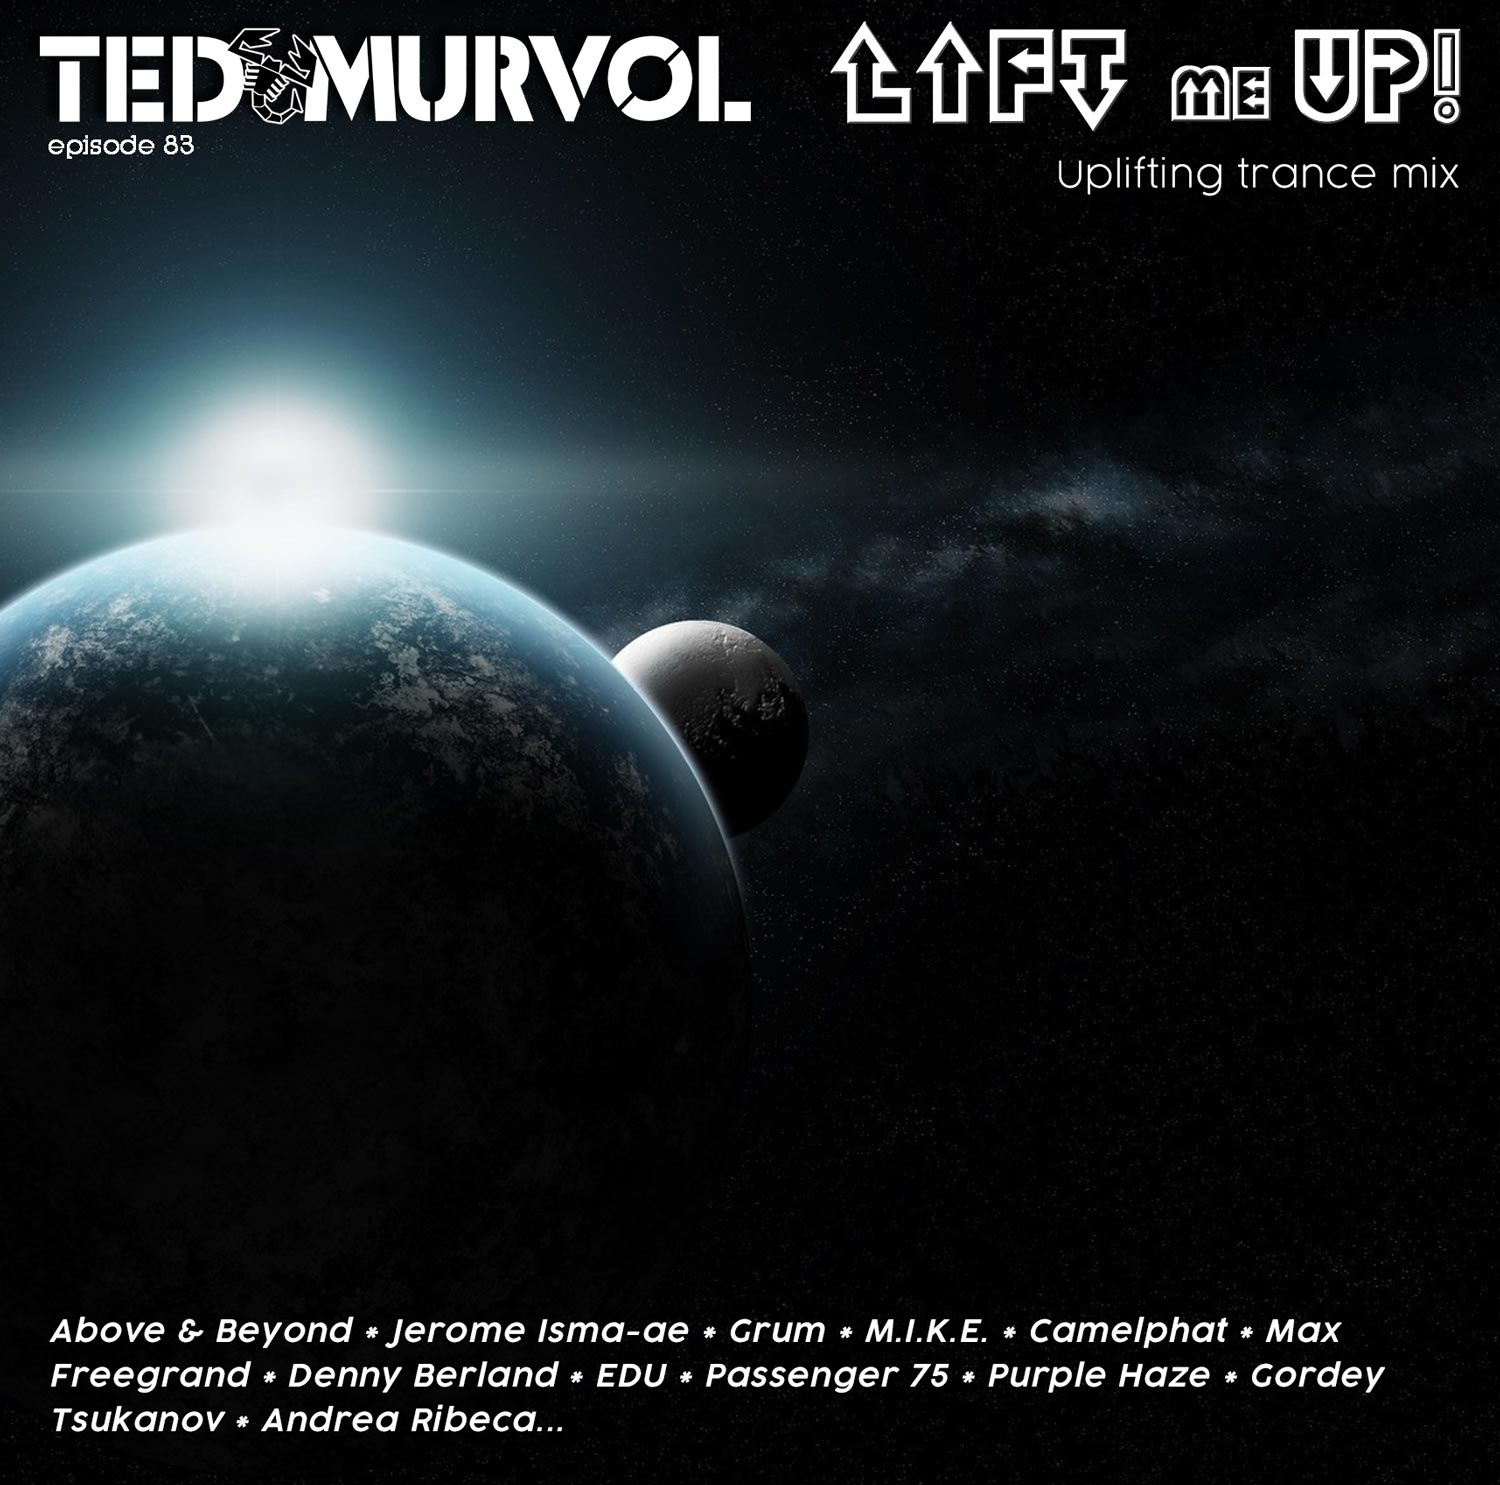 Ted Murvol - Lift Me UP 83